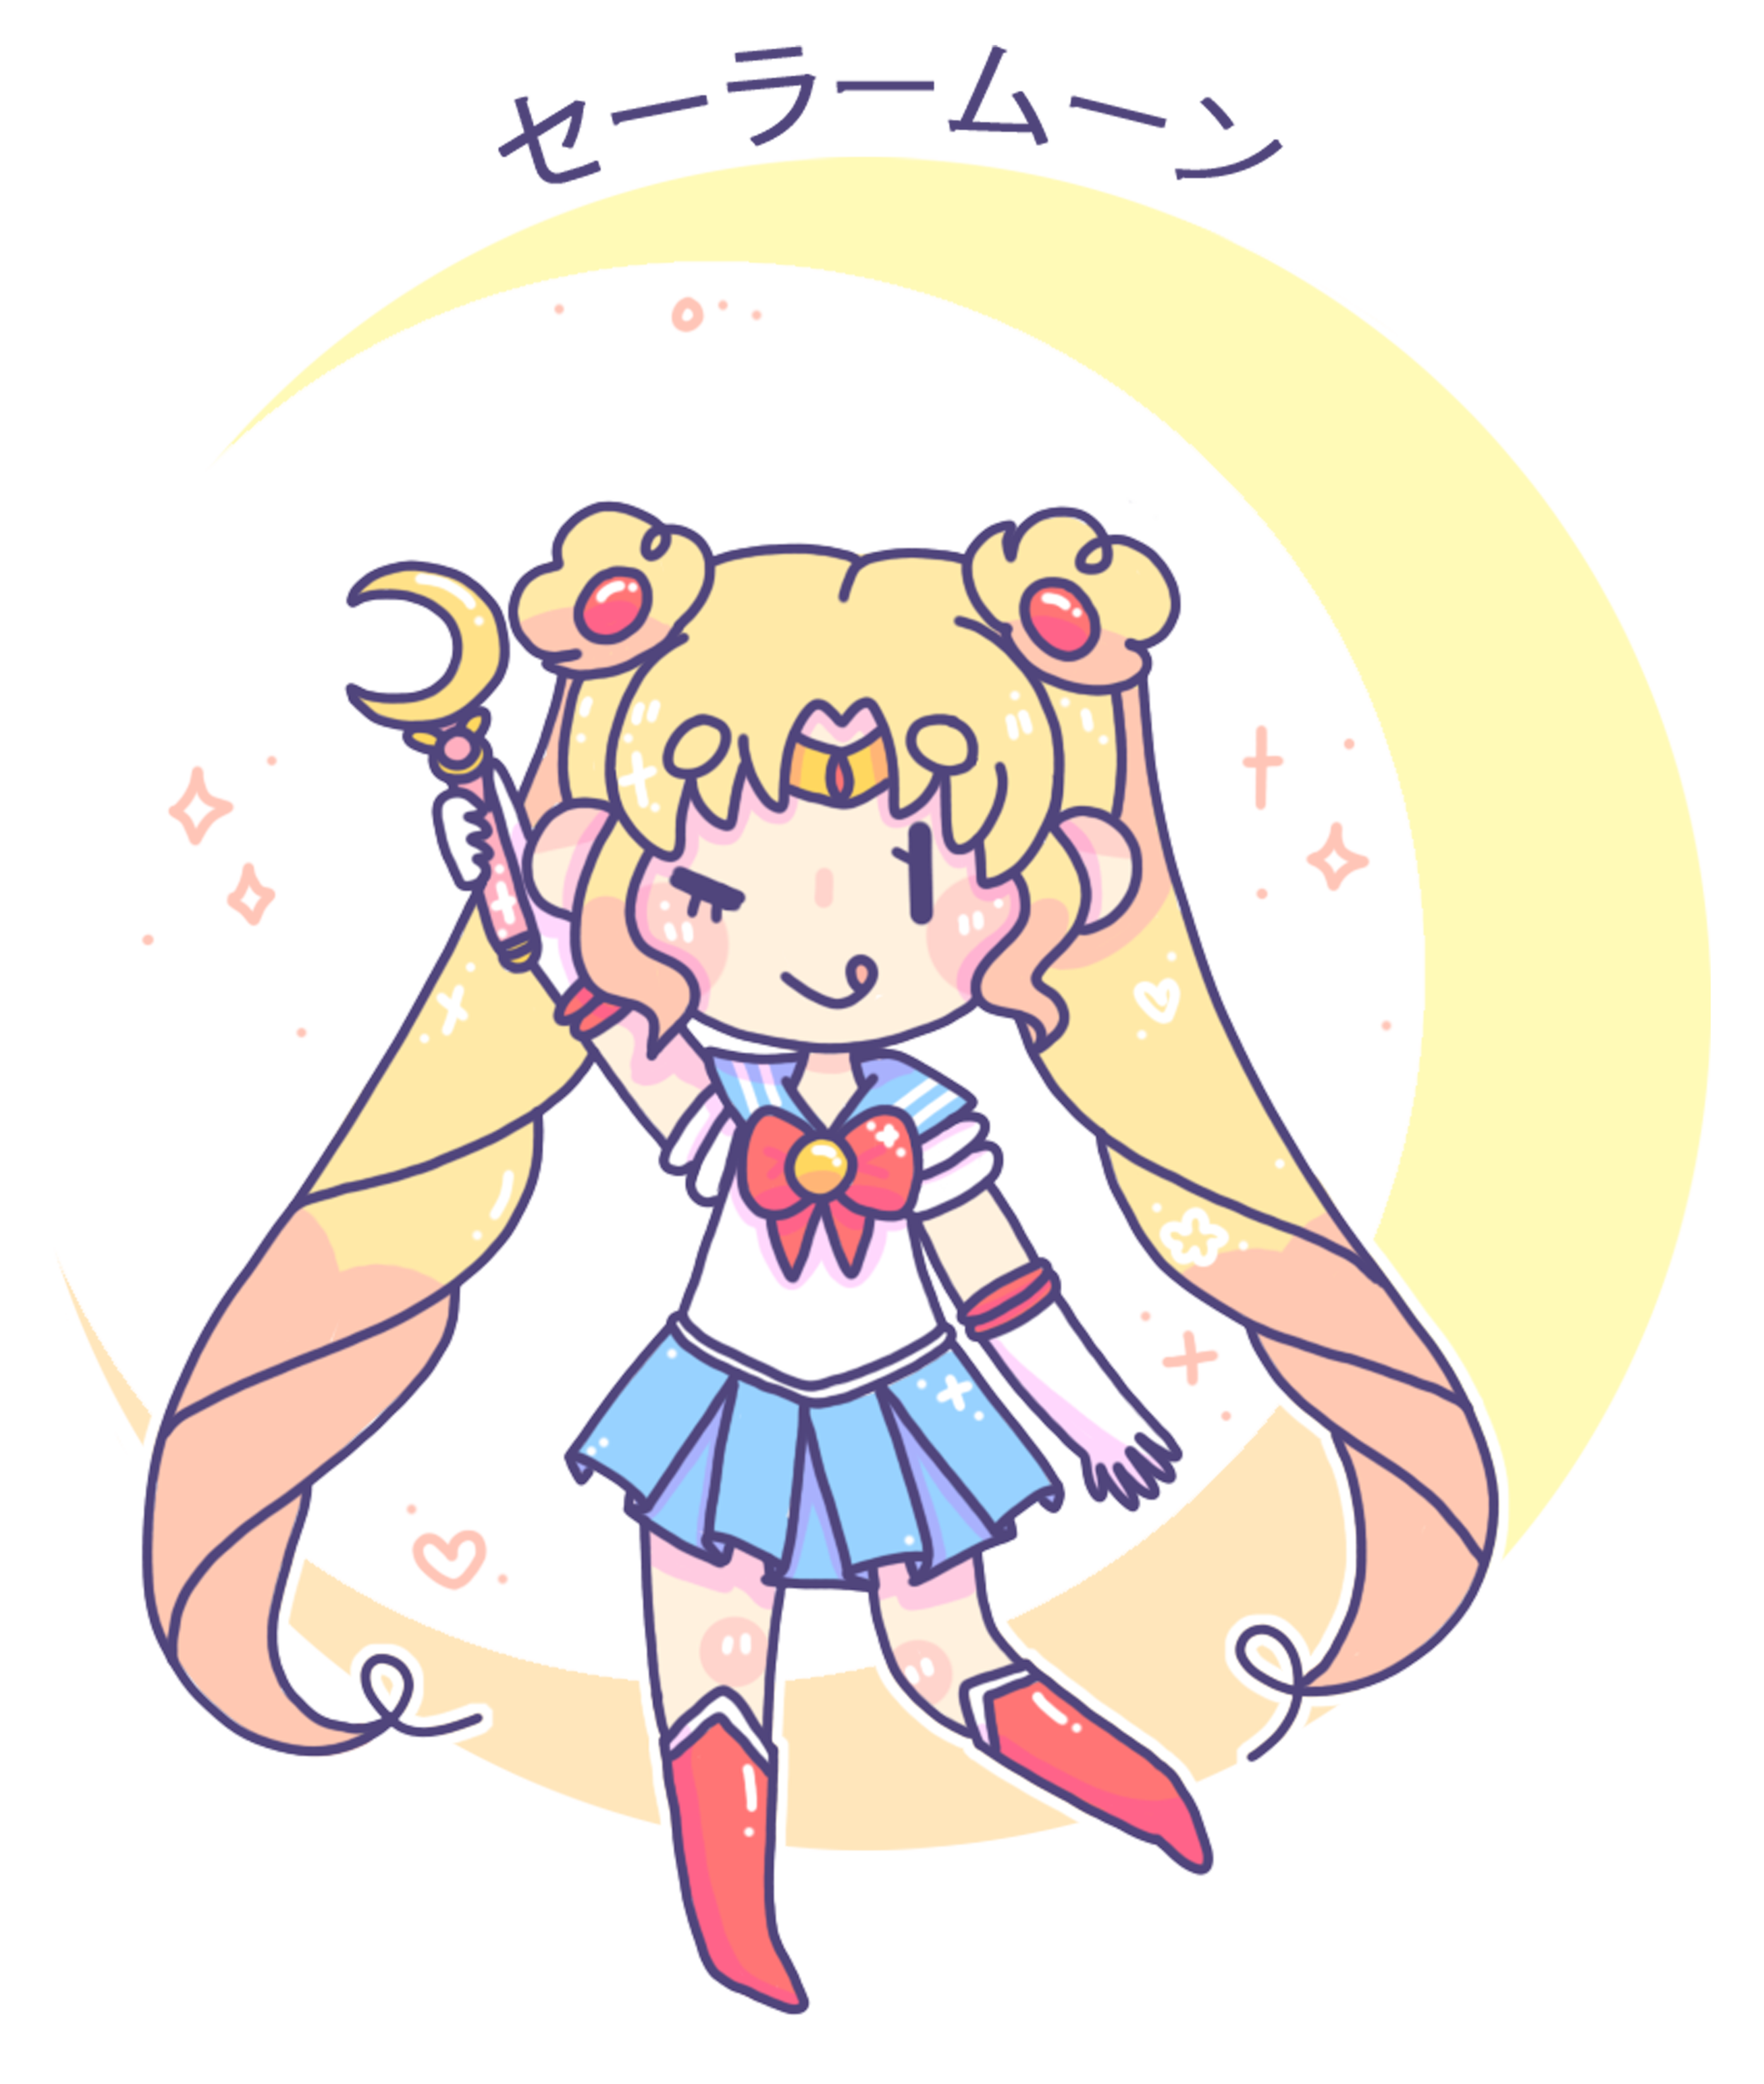 sailormoon shirt.png